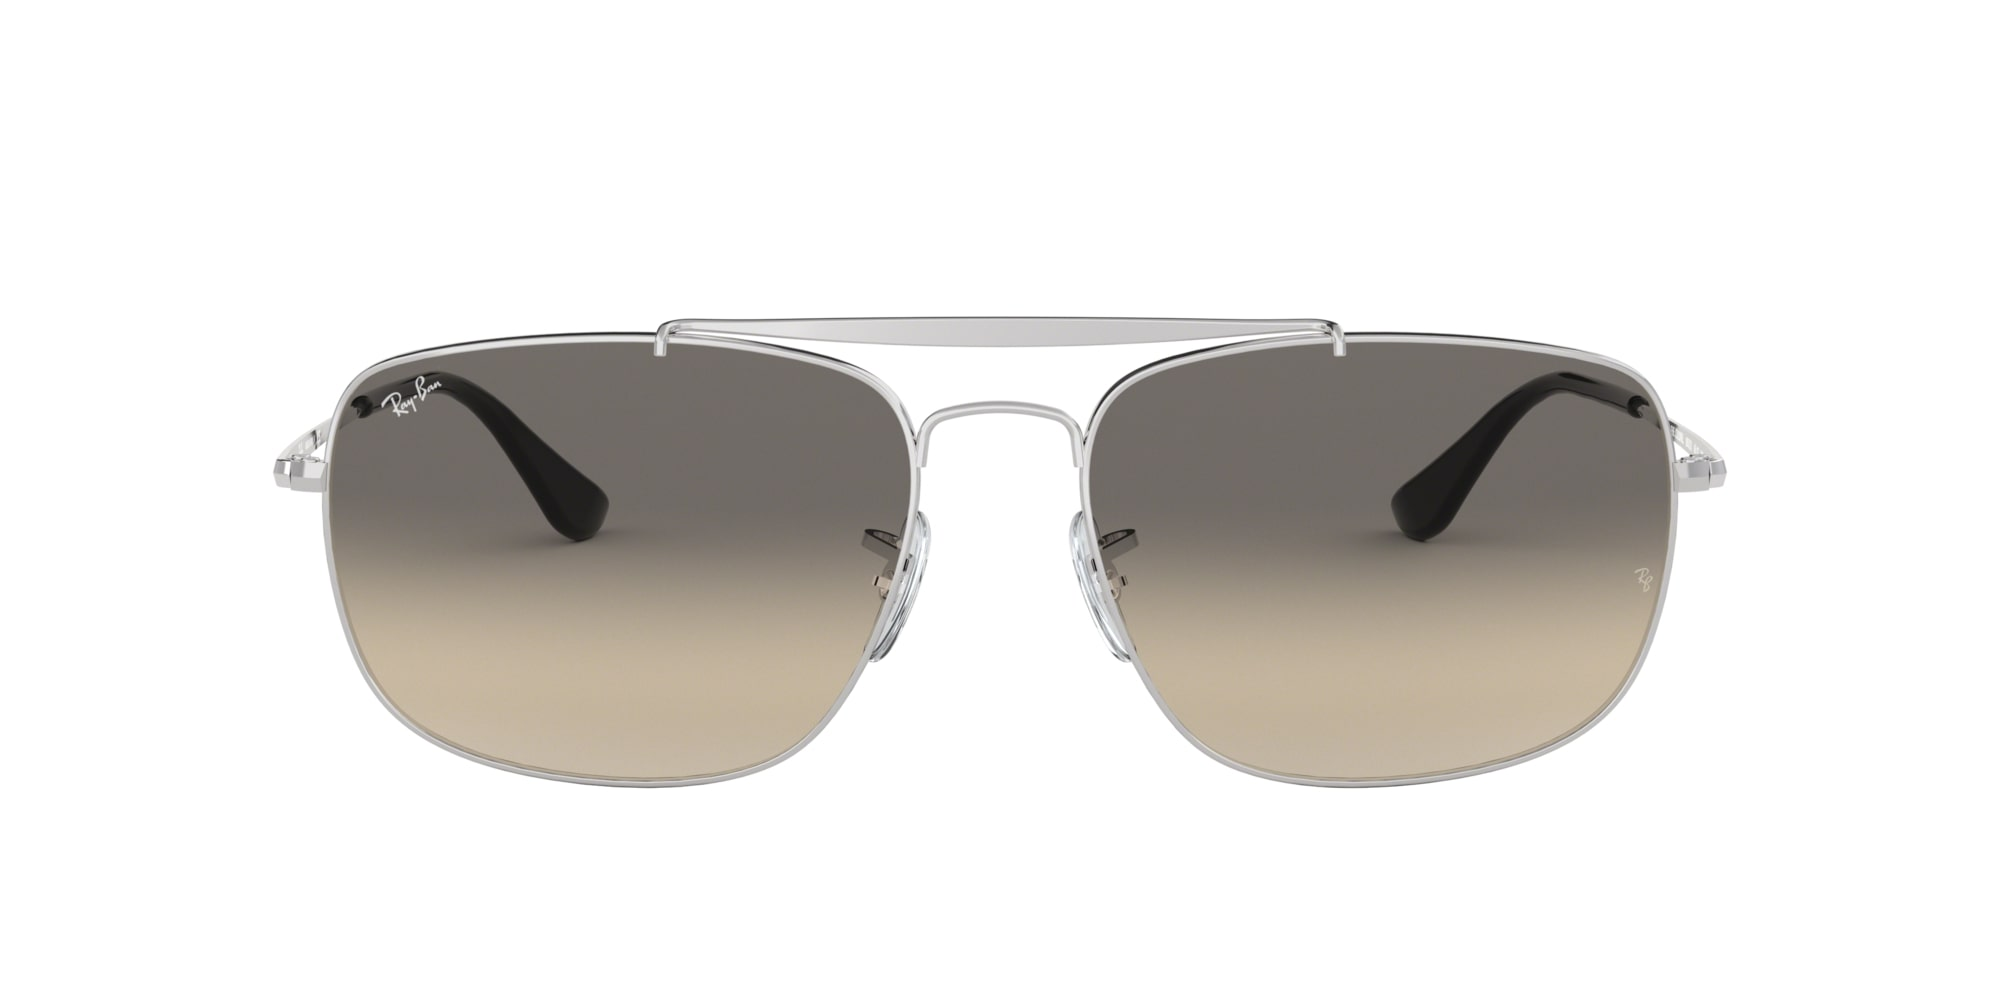 Ray Ban Colonel solbriller, silver/light grey gradiant